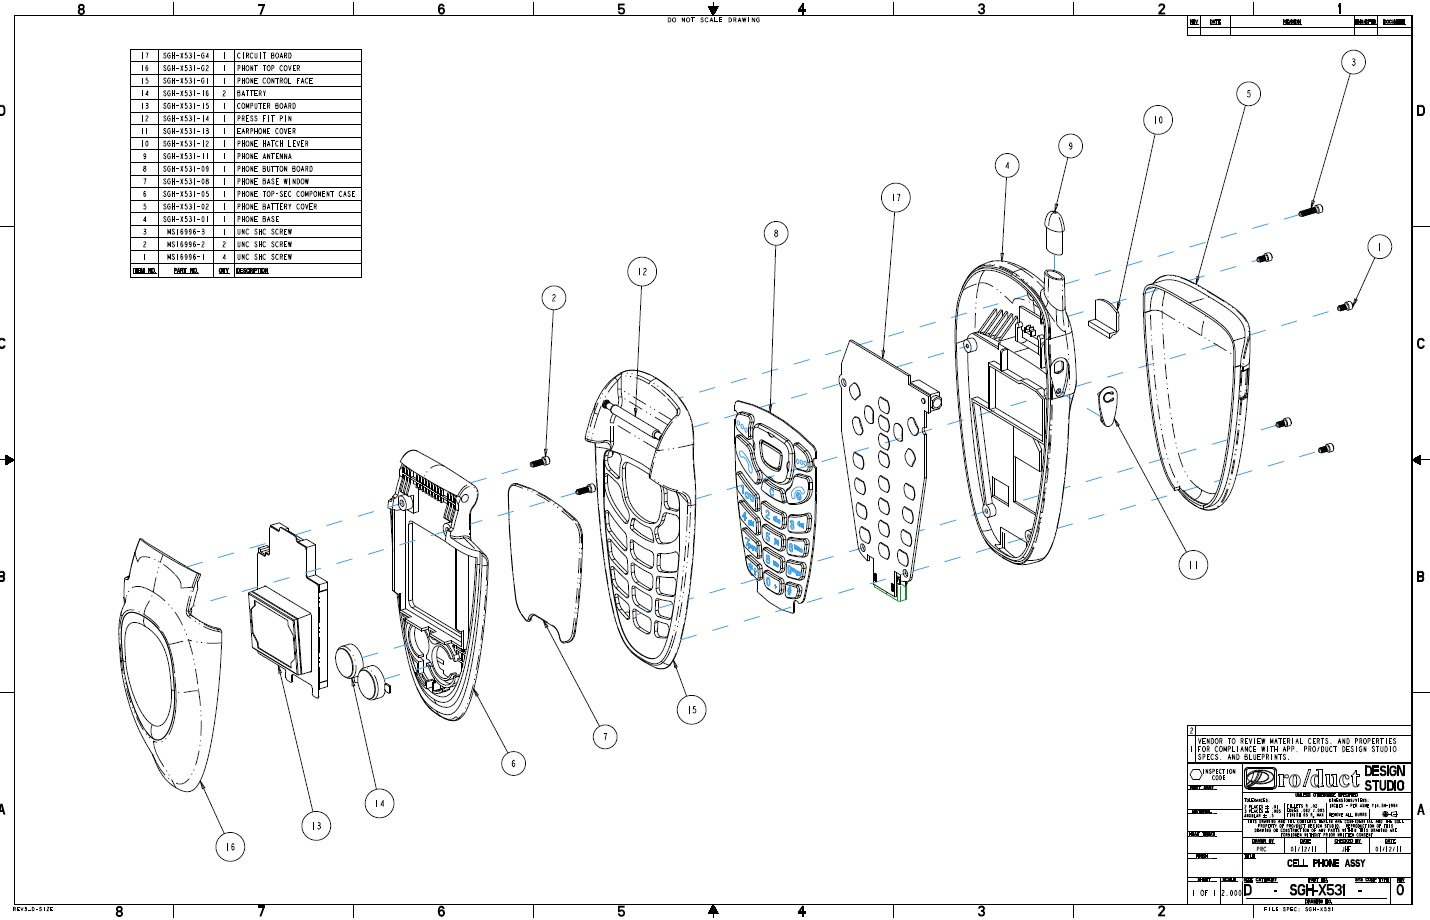 Schematic Diagram For Bridgeport Milling Machine together with Linak Linear Actuator Wiring Diagram moreover Exploded View Of Clock Parts also Wiring Diagram Terminology moreover 6 Axis Breakout Board Wiring Diagrams. on wiring a milling machine